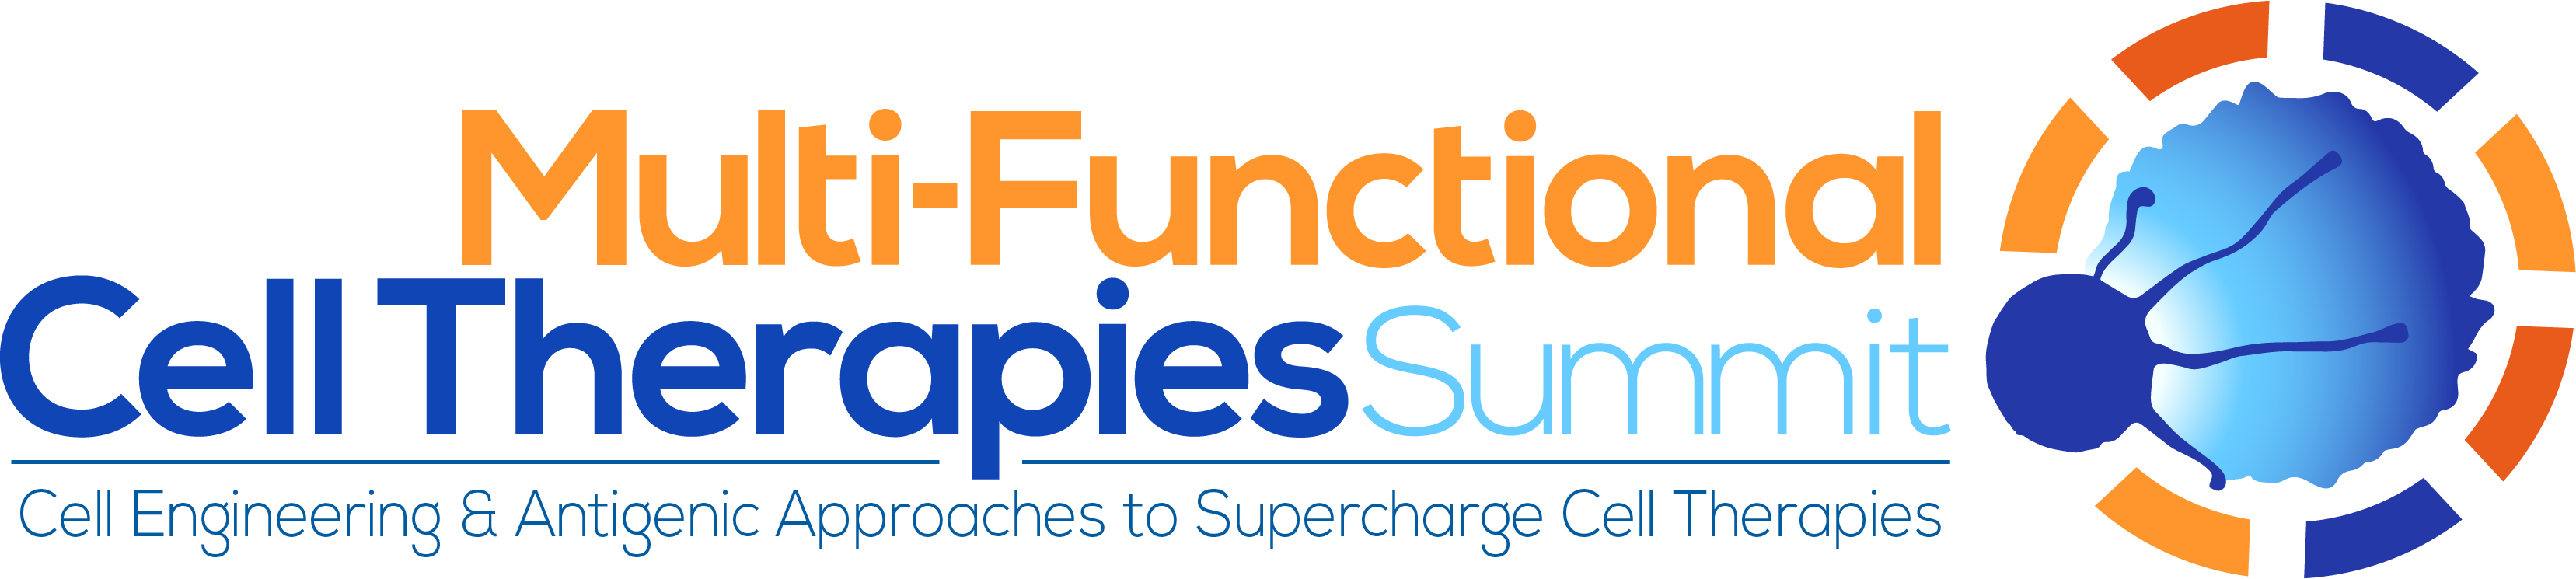 HW201201 Multi-Functional Cell Therapies Summit logo